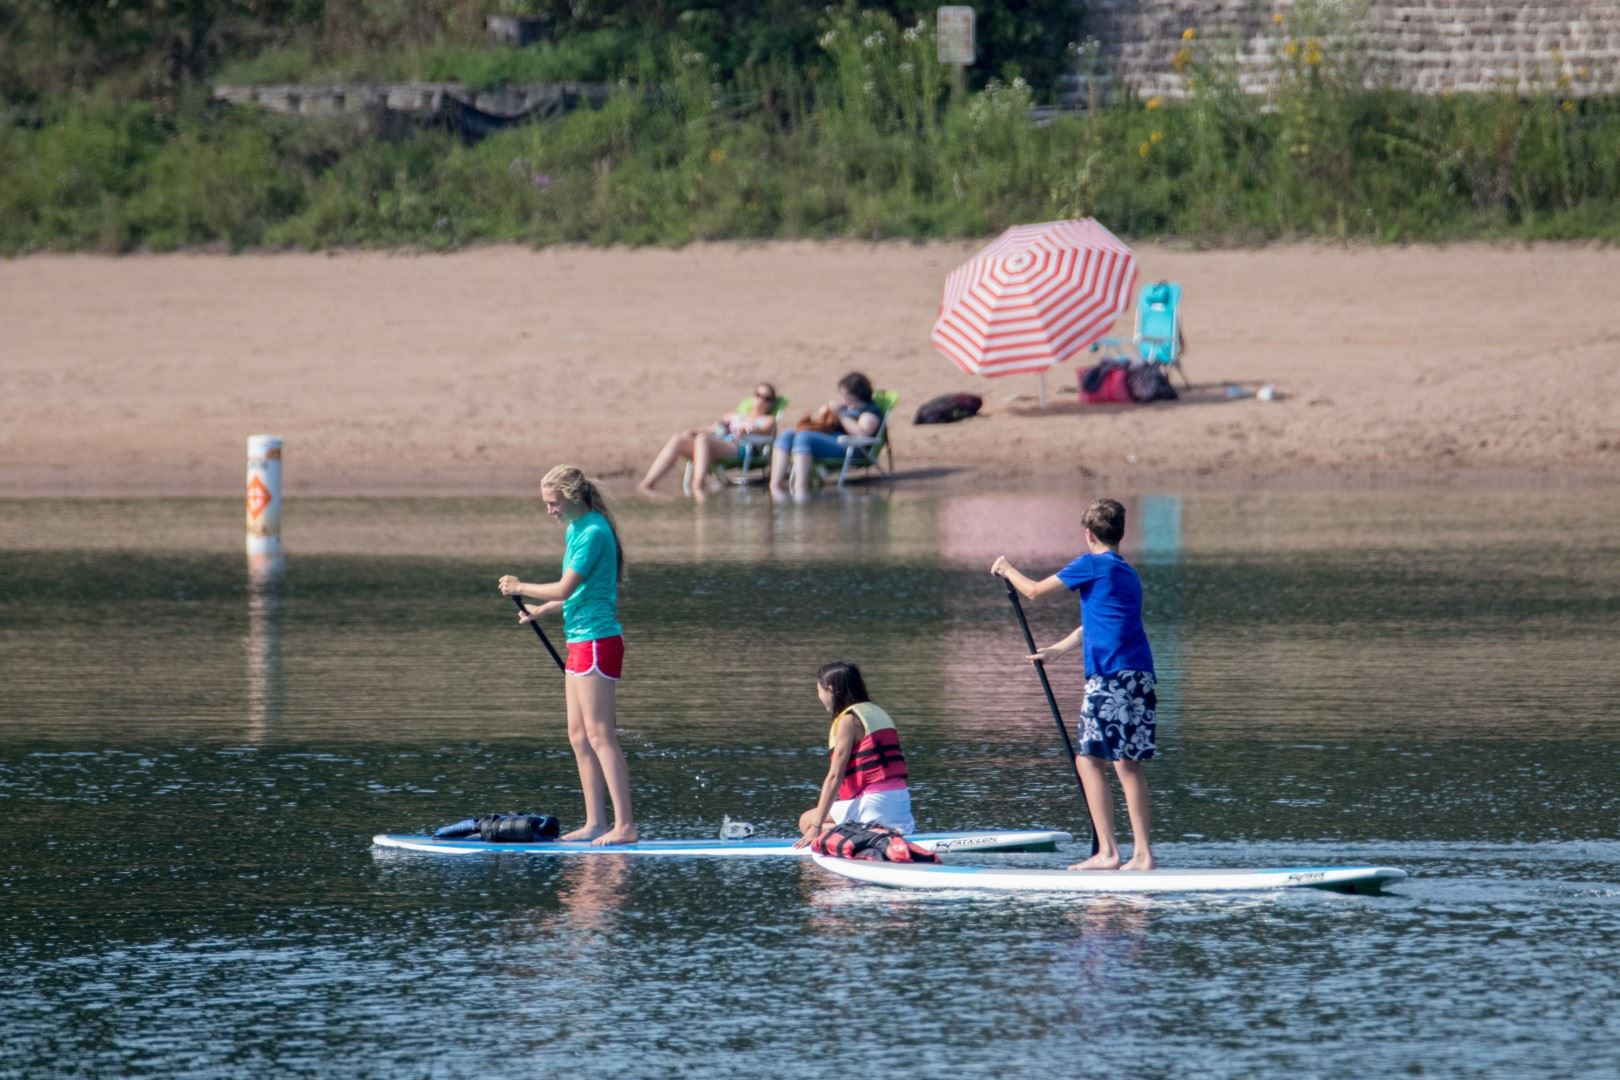 Kids Paddleboarding at County Park